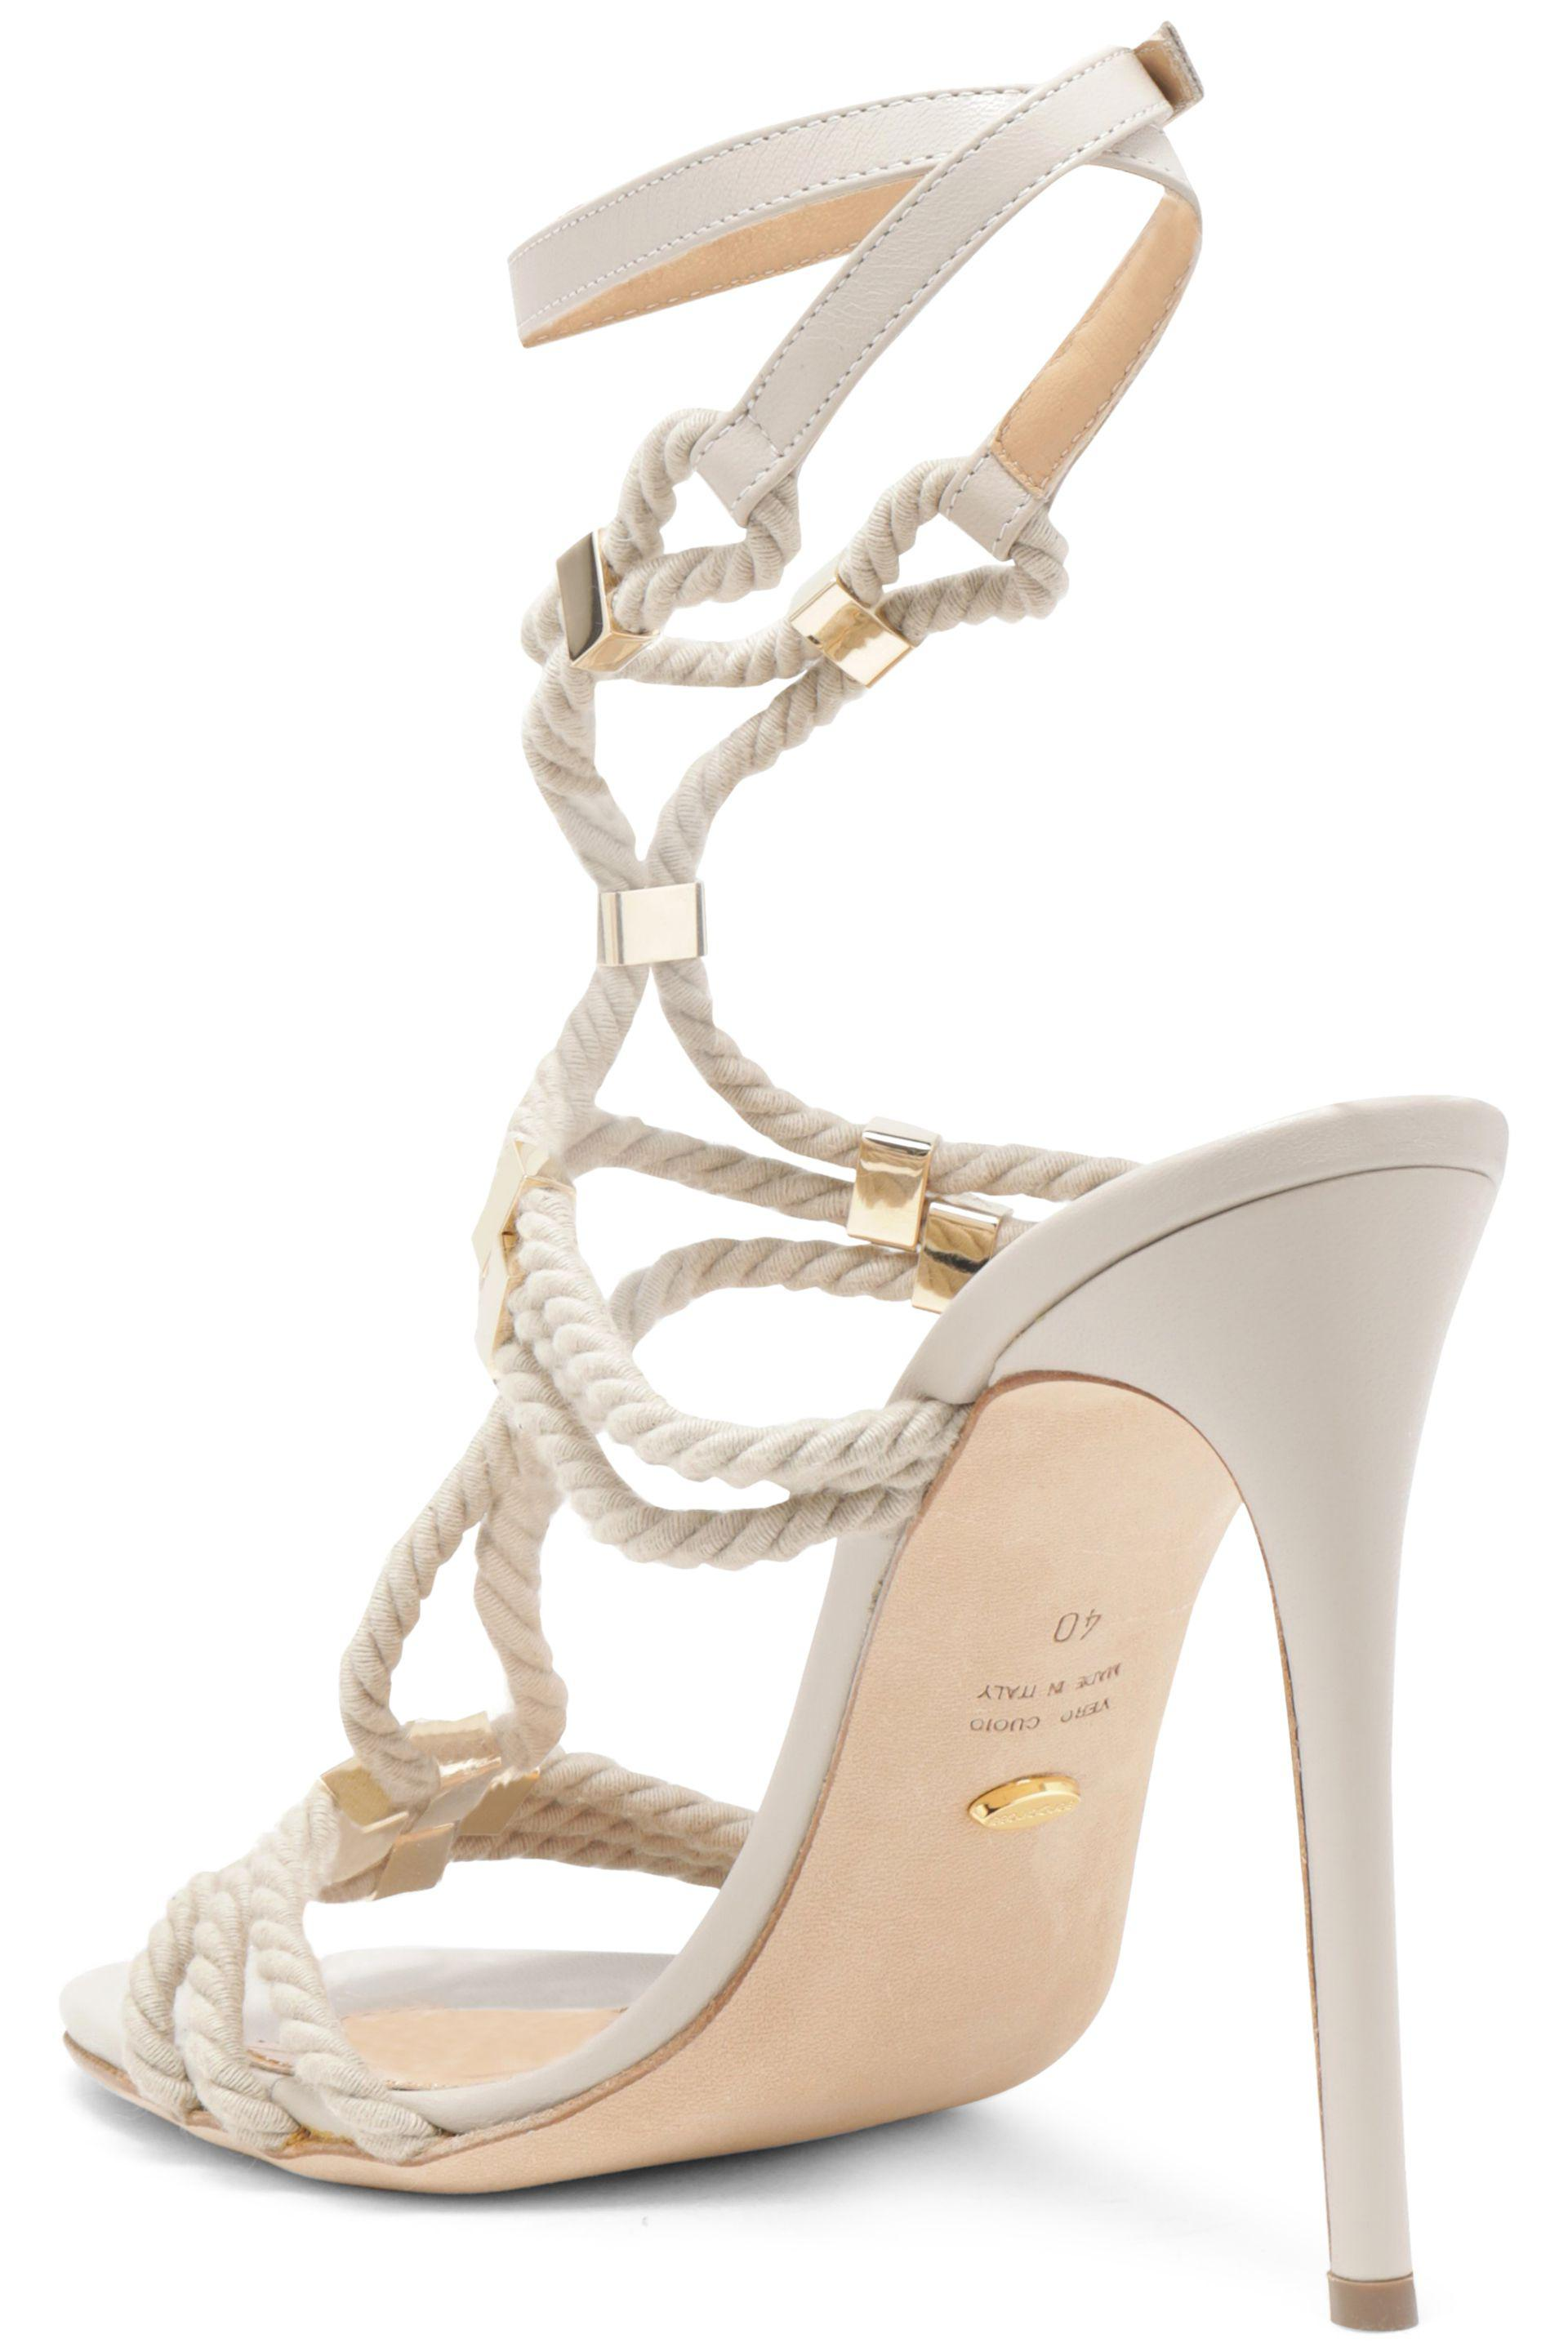 3f40e9f8f Sergio Rossi Embellished Rope Sandals in Natural - Lyst